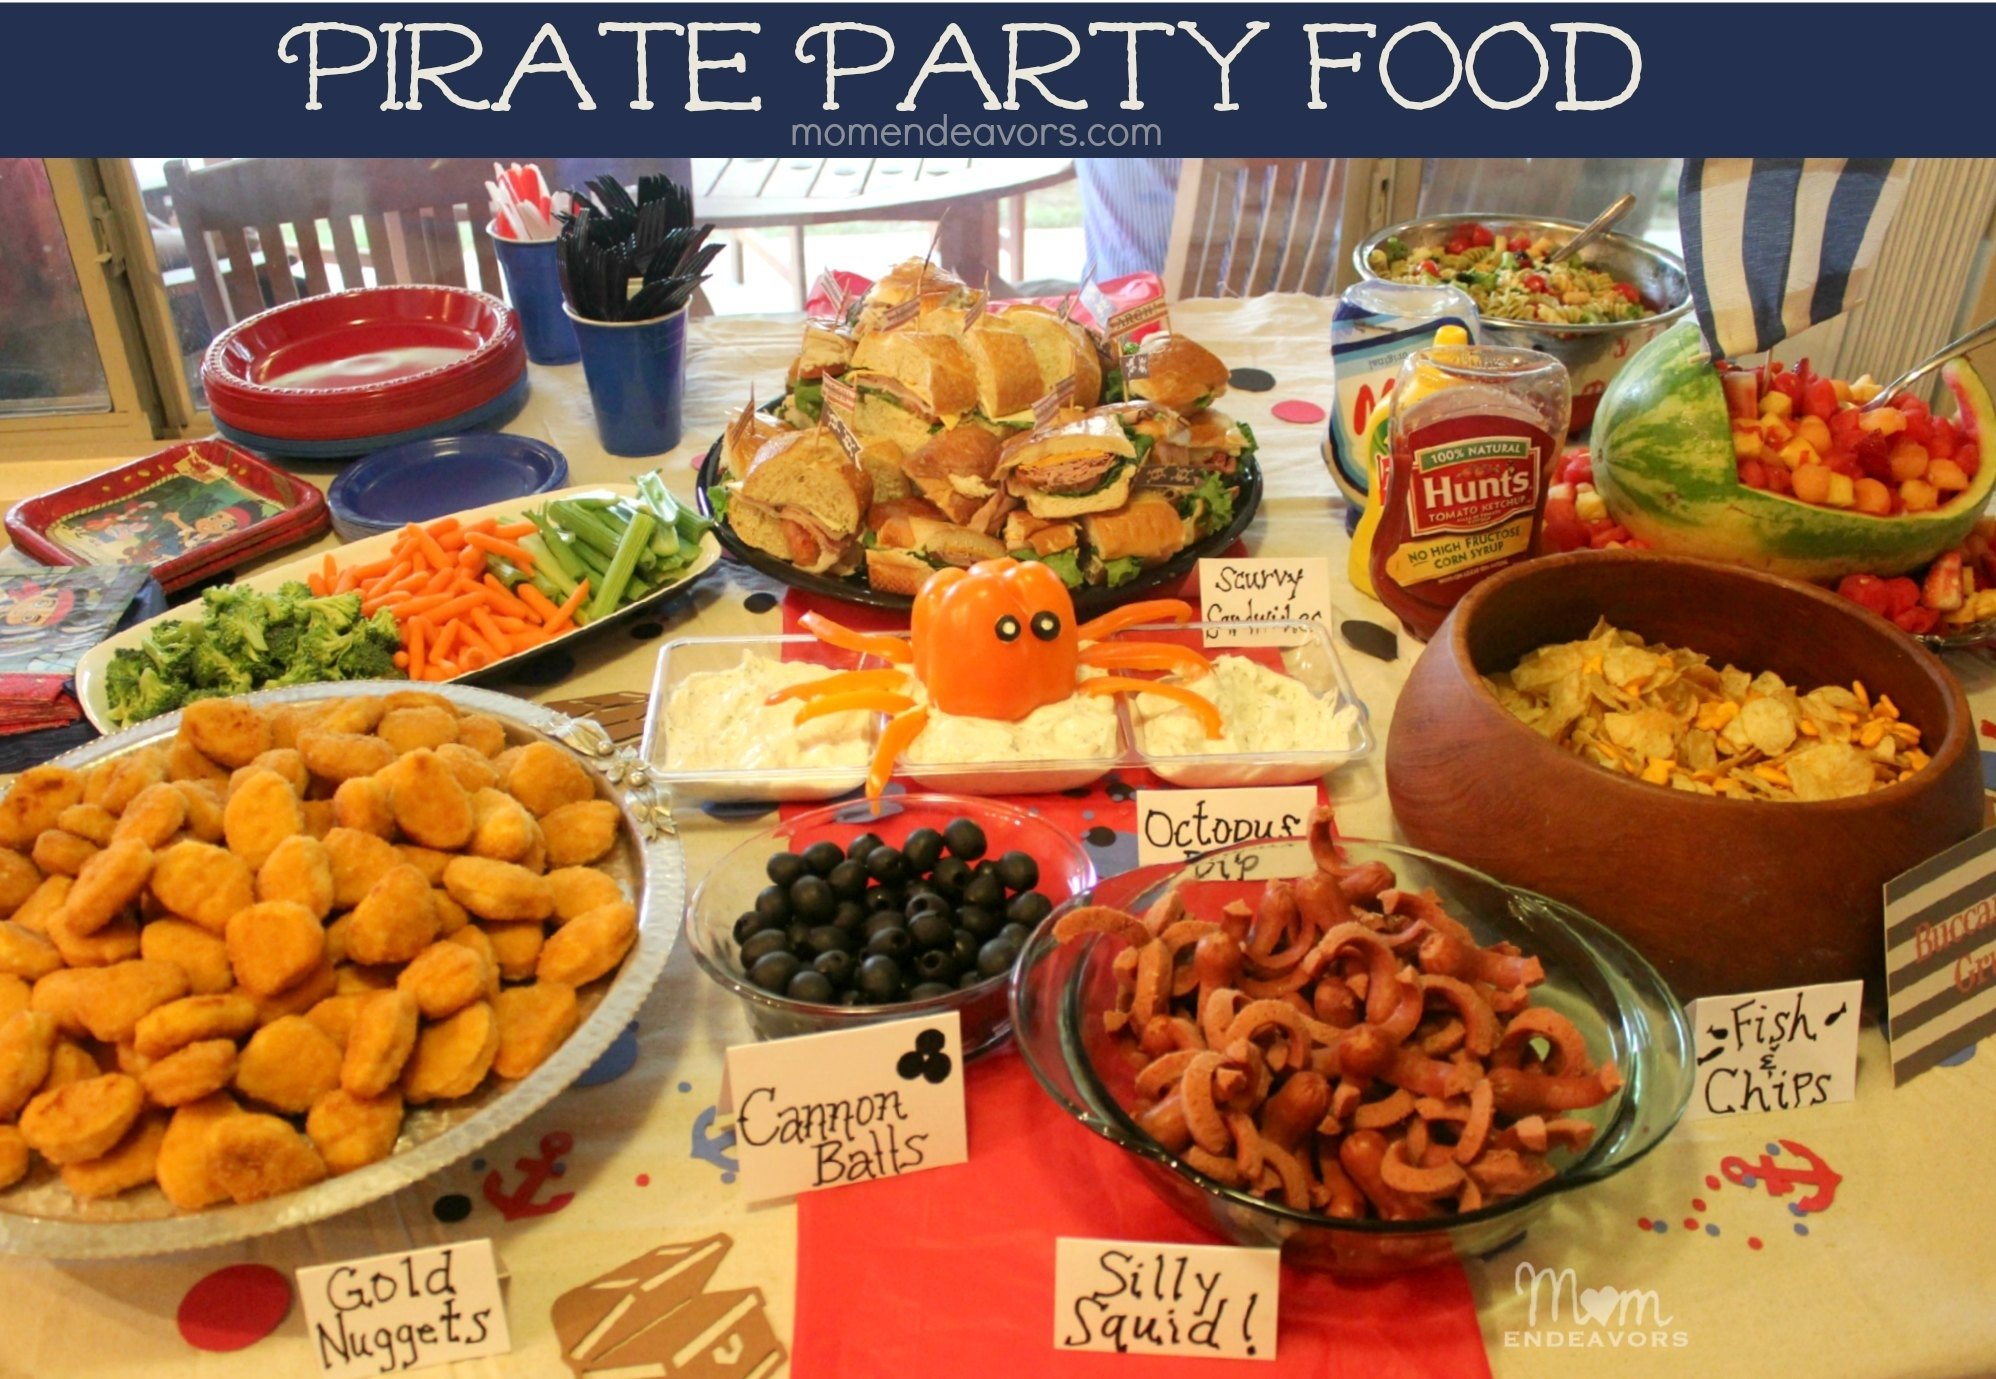 10 Most Popular Kids Birthday Party Menu Ideas jake and the never land pirates birthday party food 7 2020